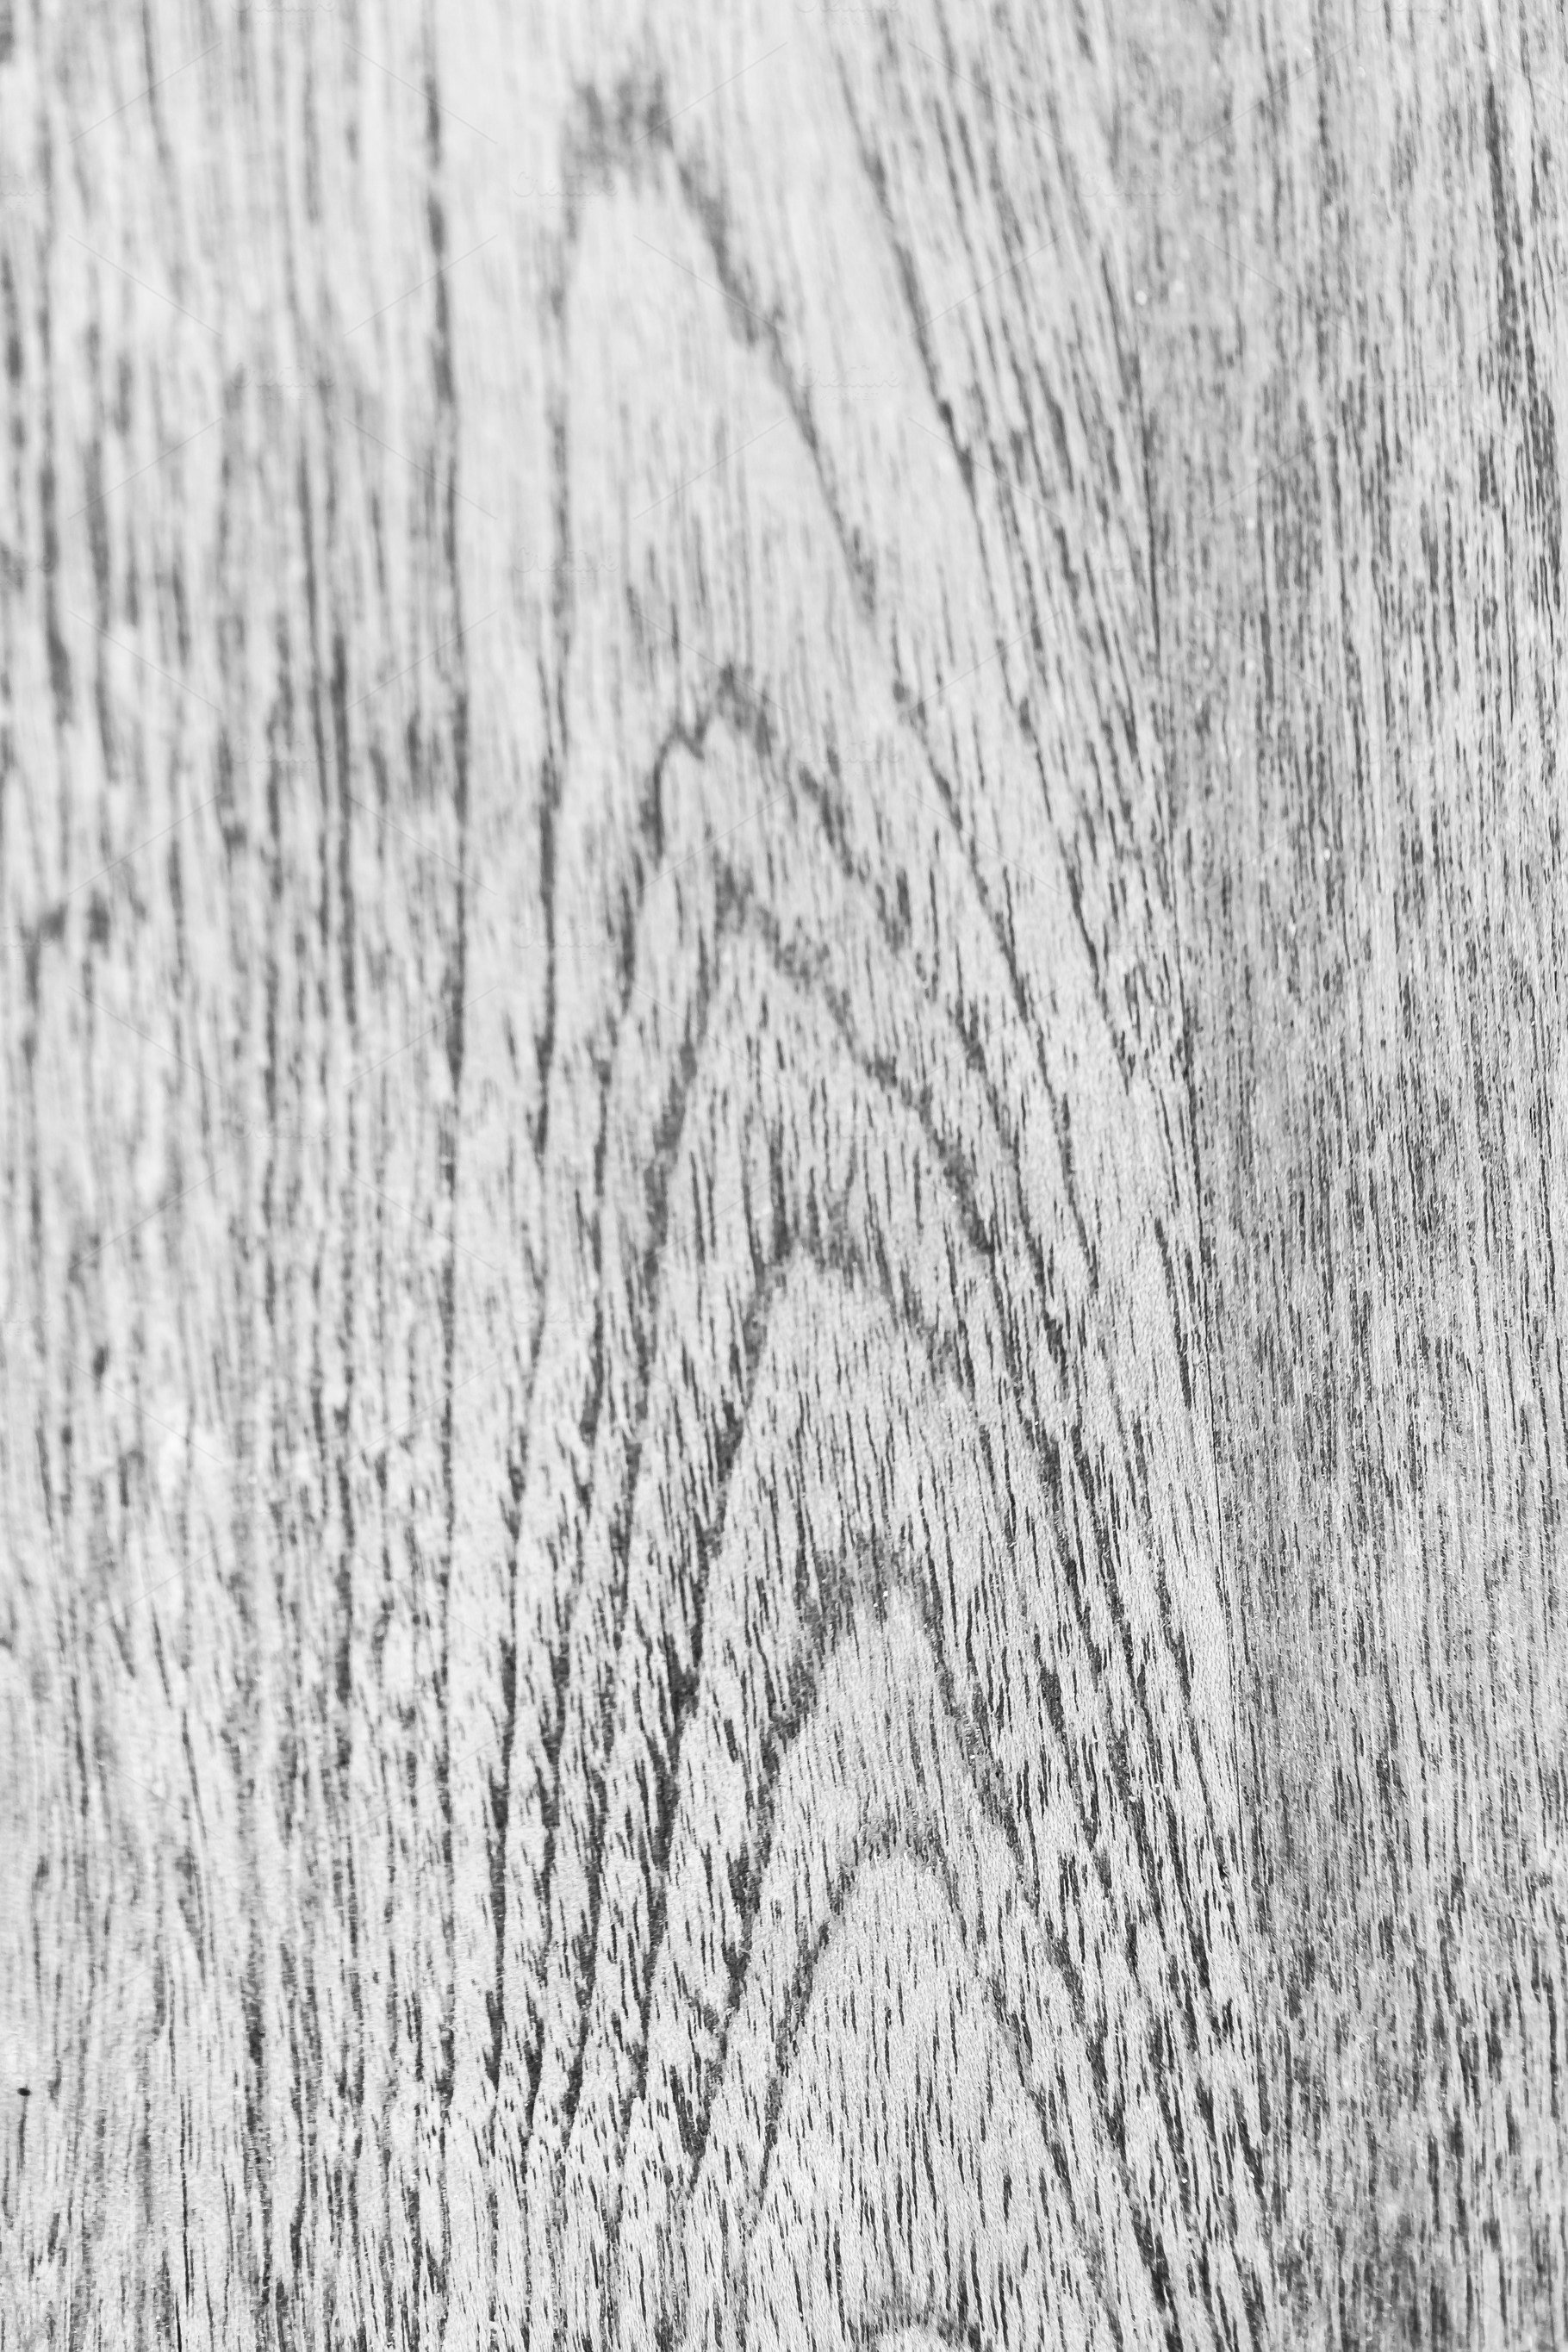 Abstract Dark Grey Wood Texture Background Well Use As Wallpaper